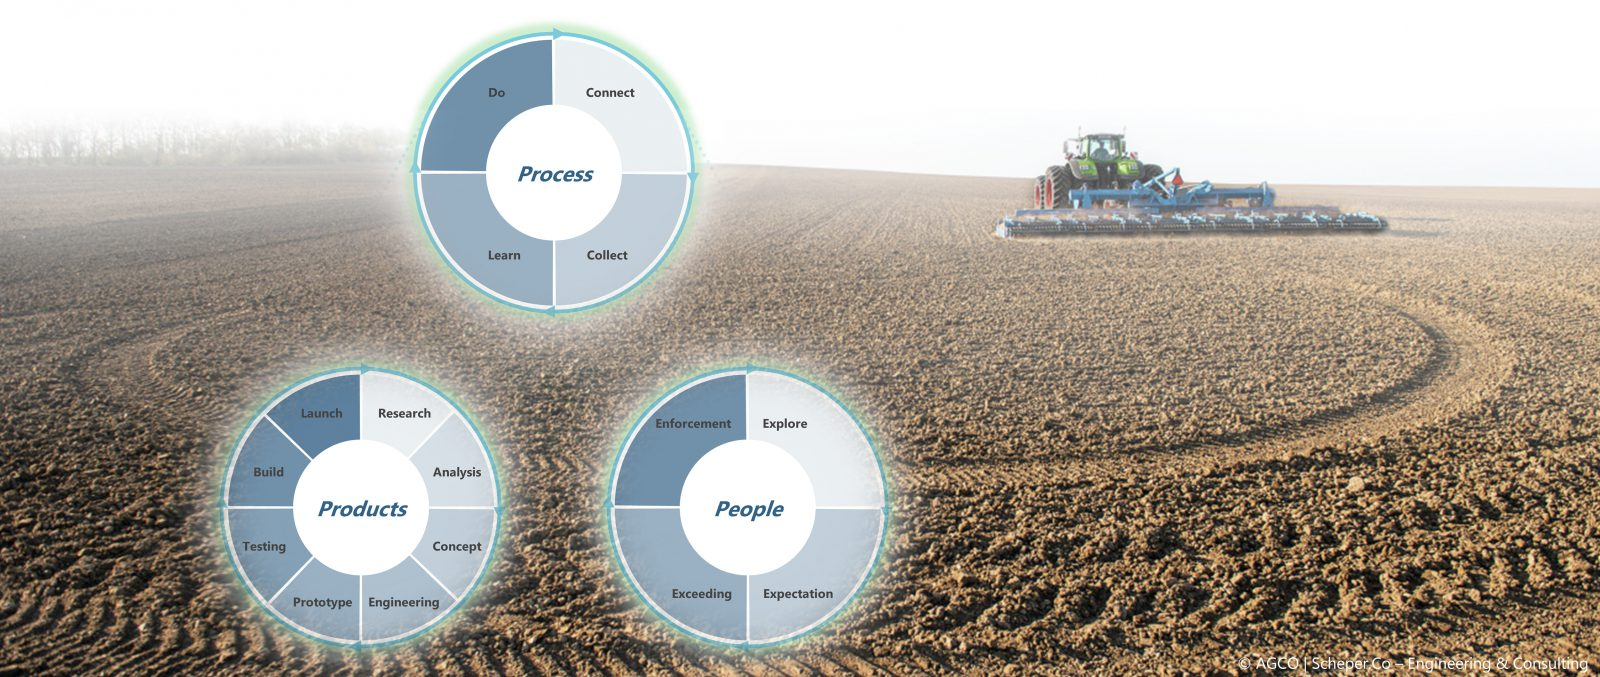 Clear benefits for AGCO, Dealers, and Farmers